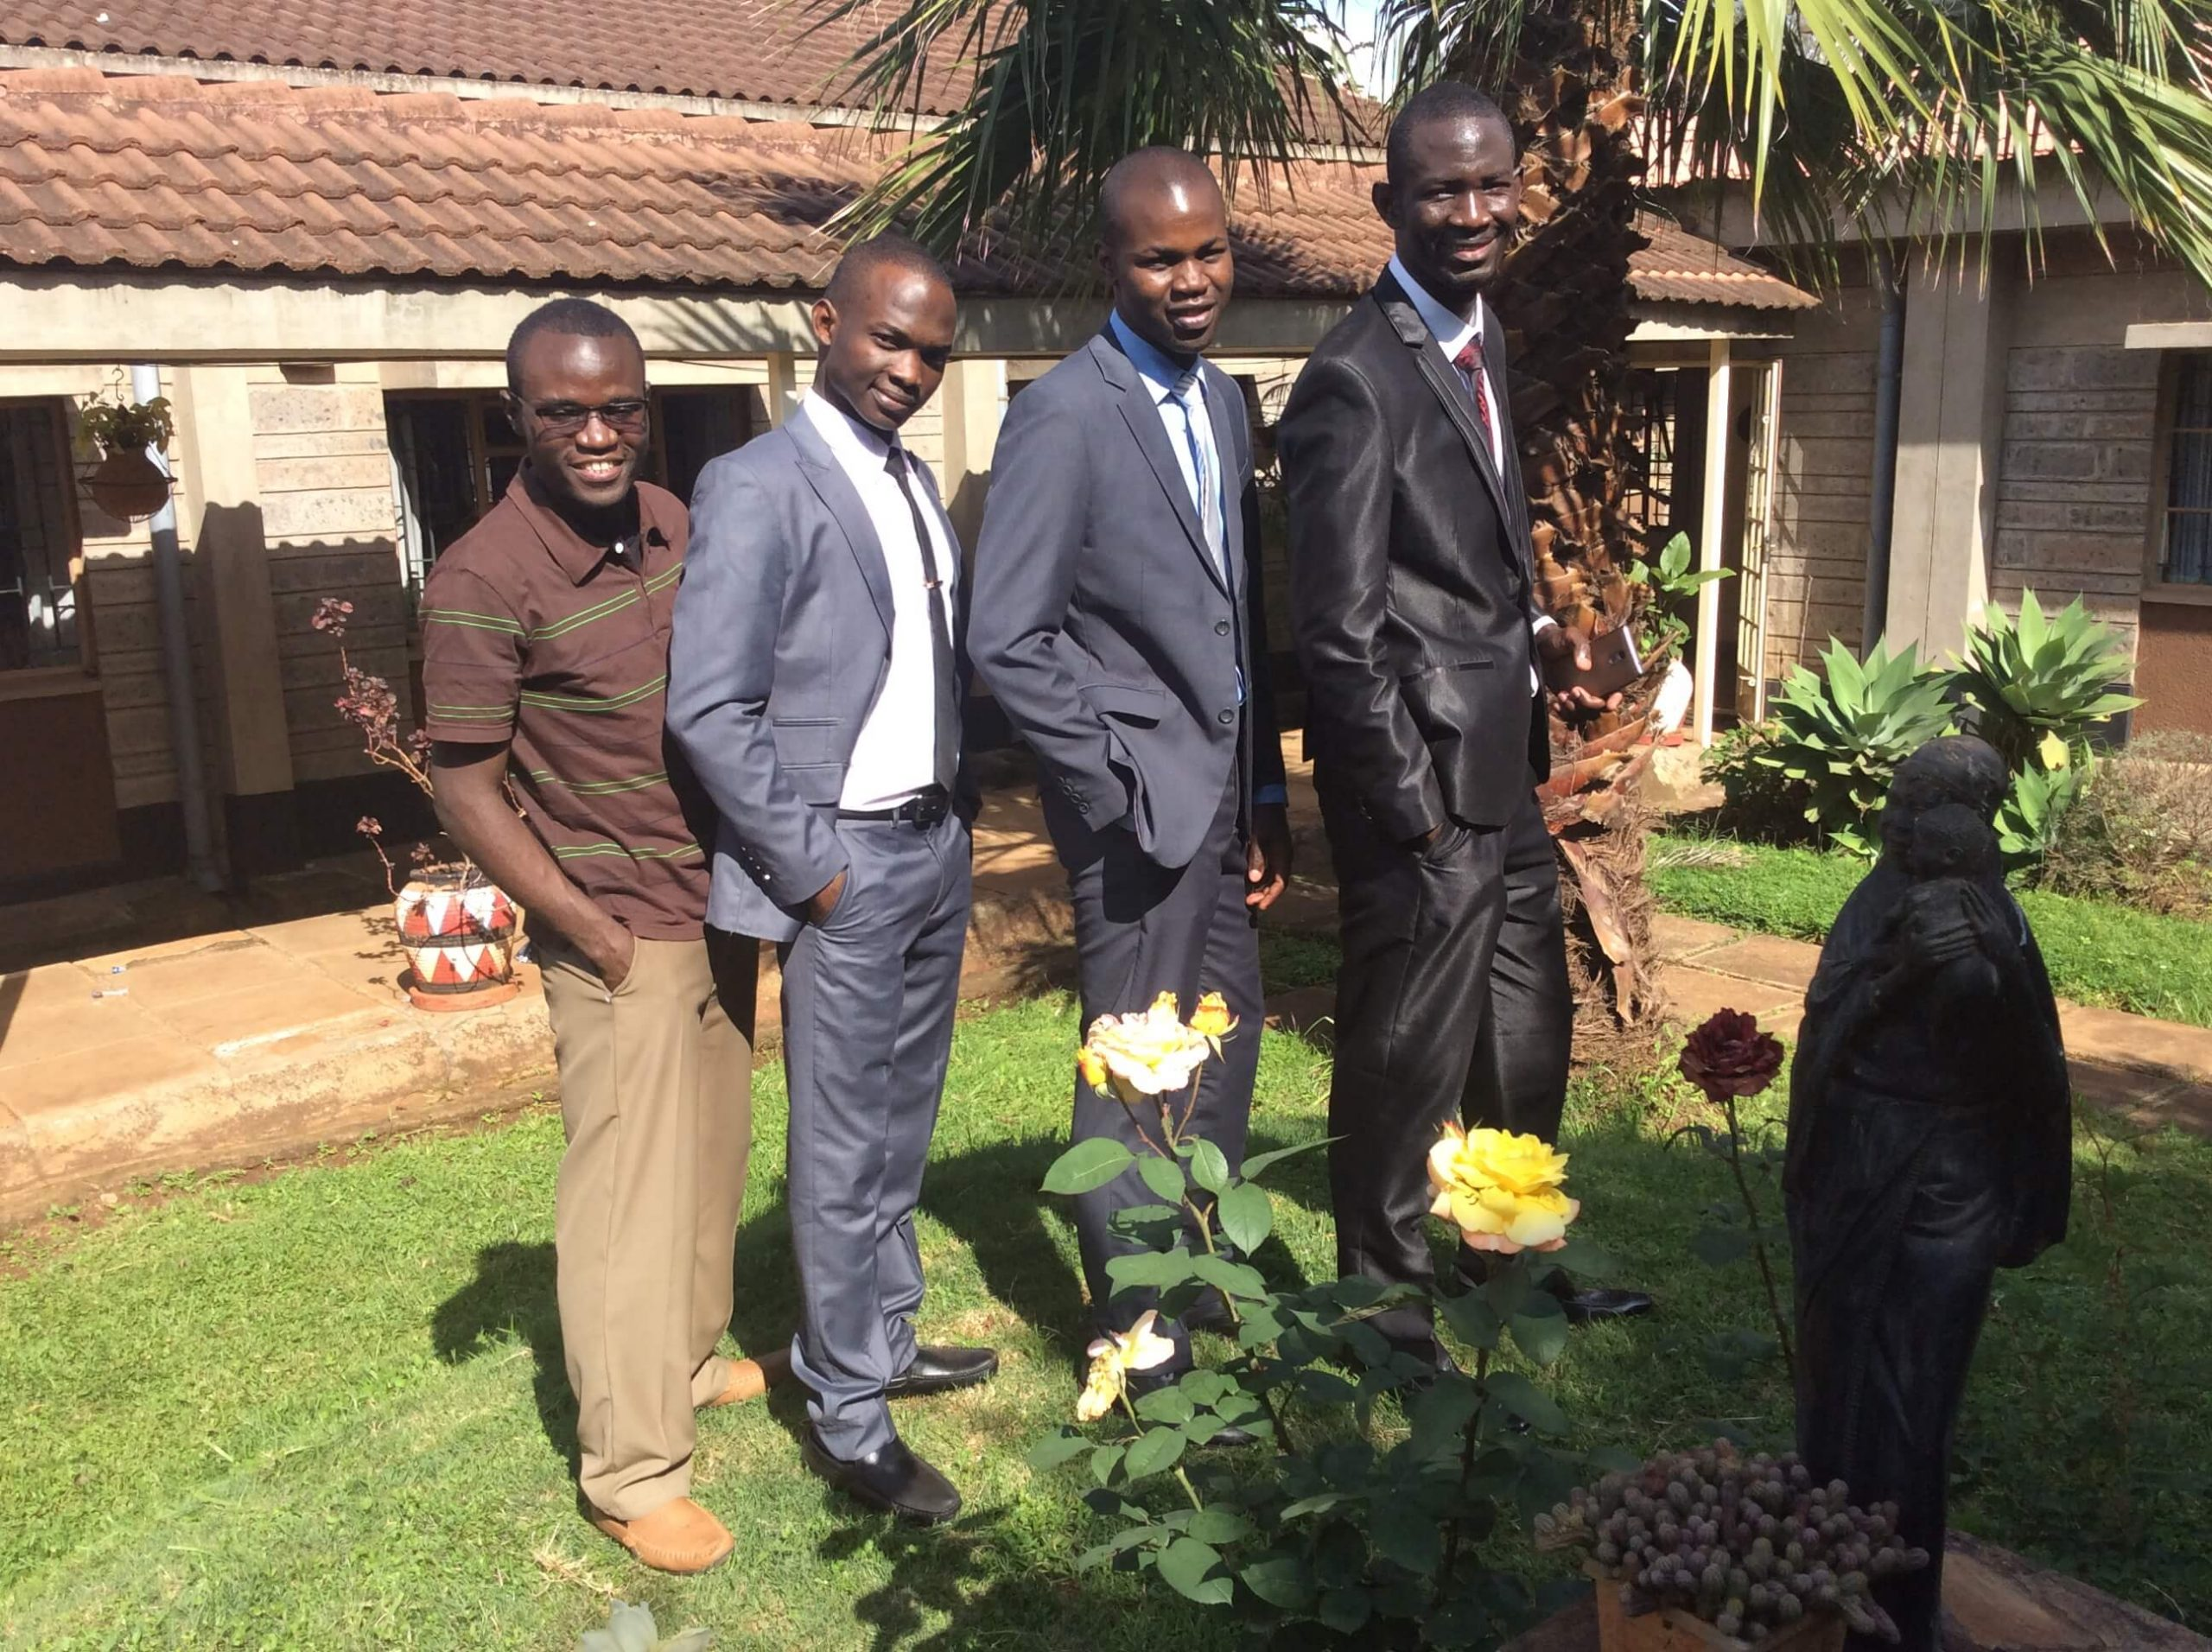 Seminarians from the Society of African Missionaries receive formation throughout Africa